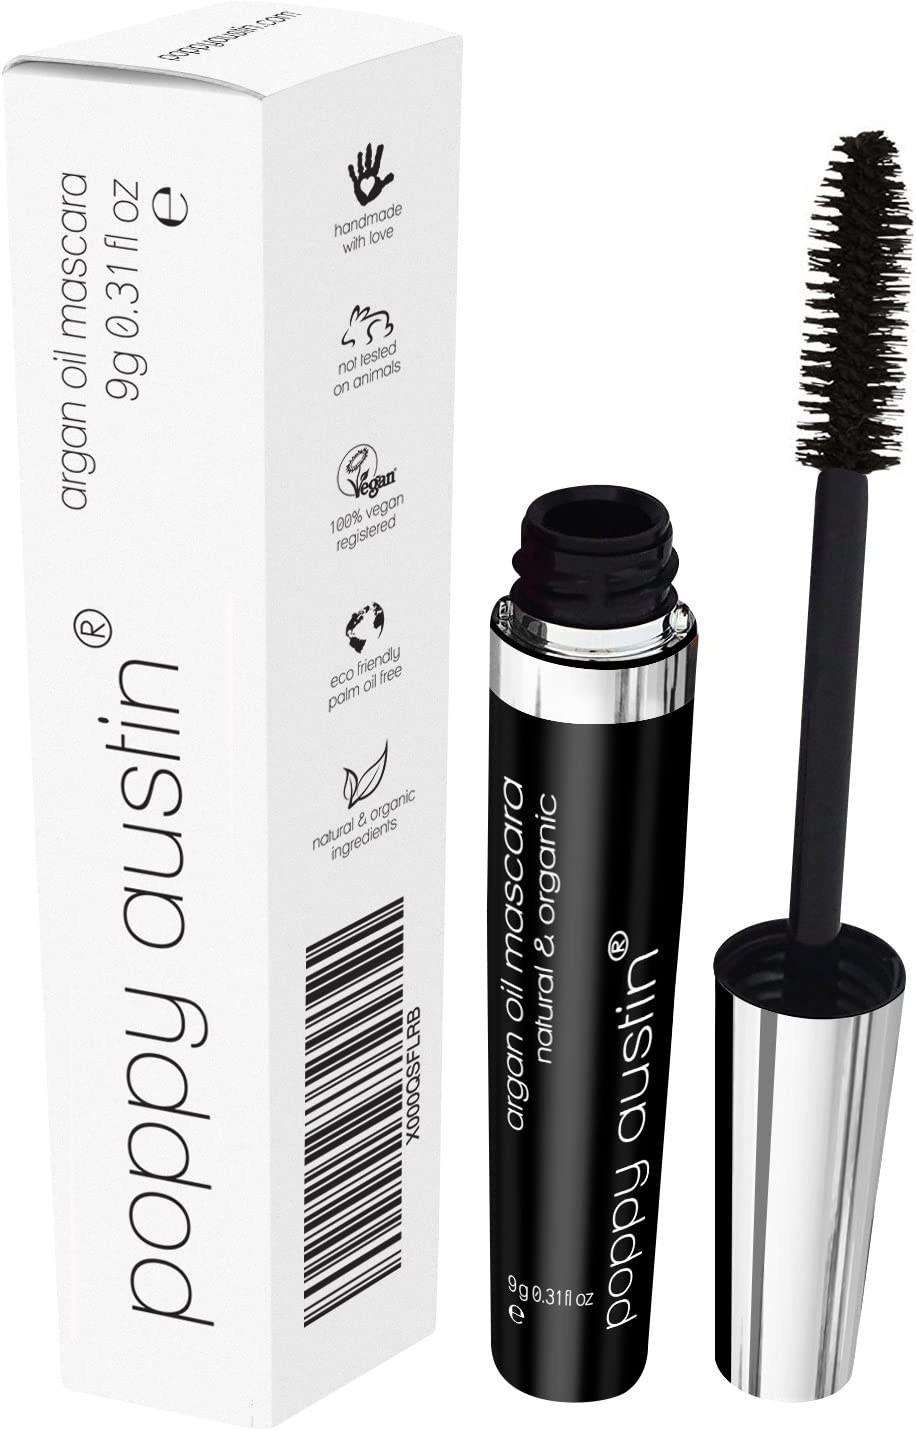 FINEST Vegan & Organic Lengthening Mascara Black With Argan Oil